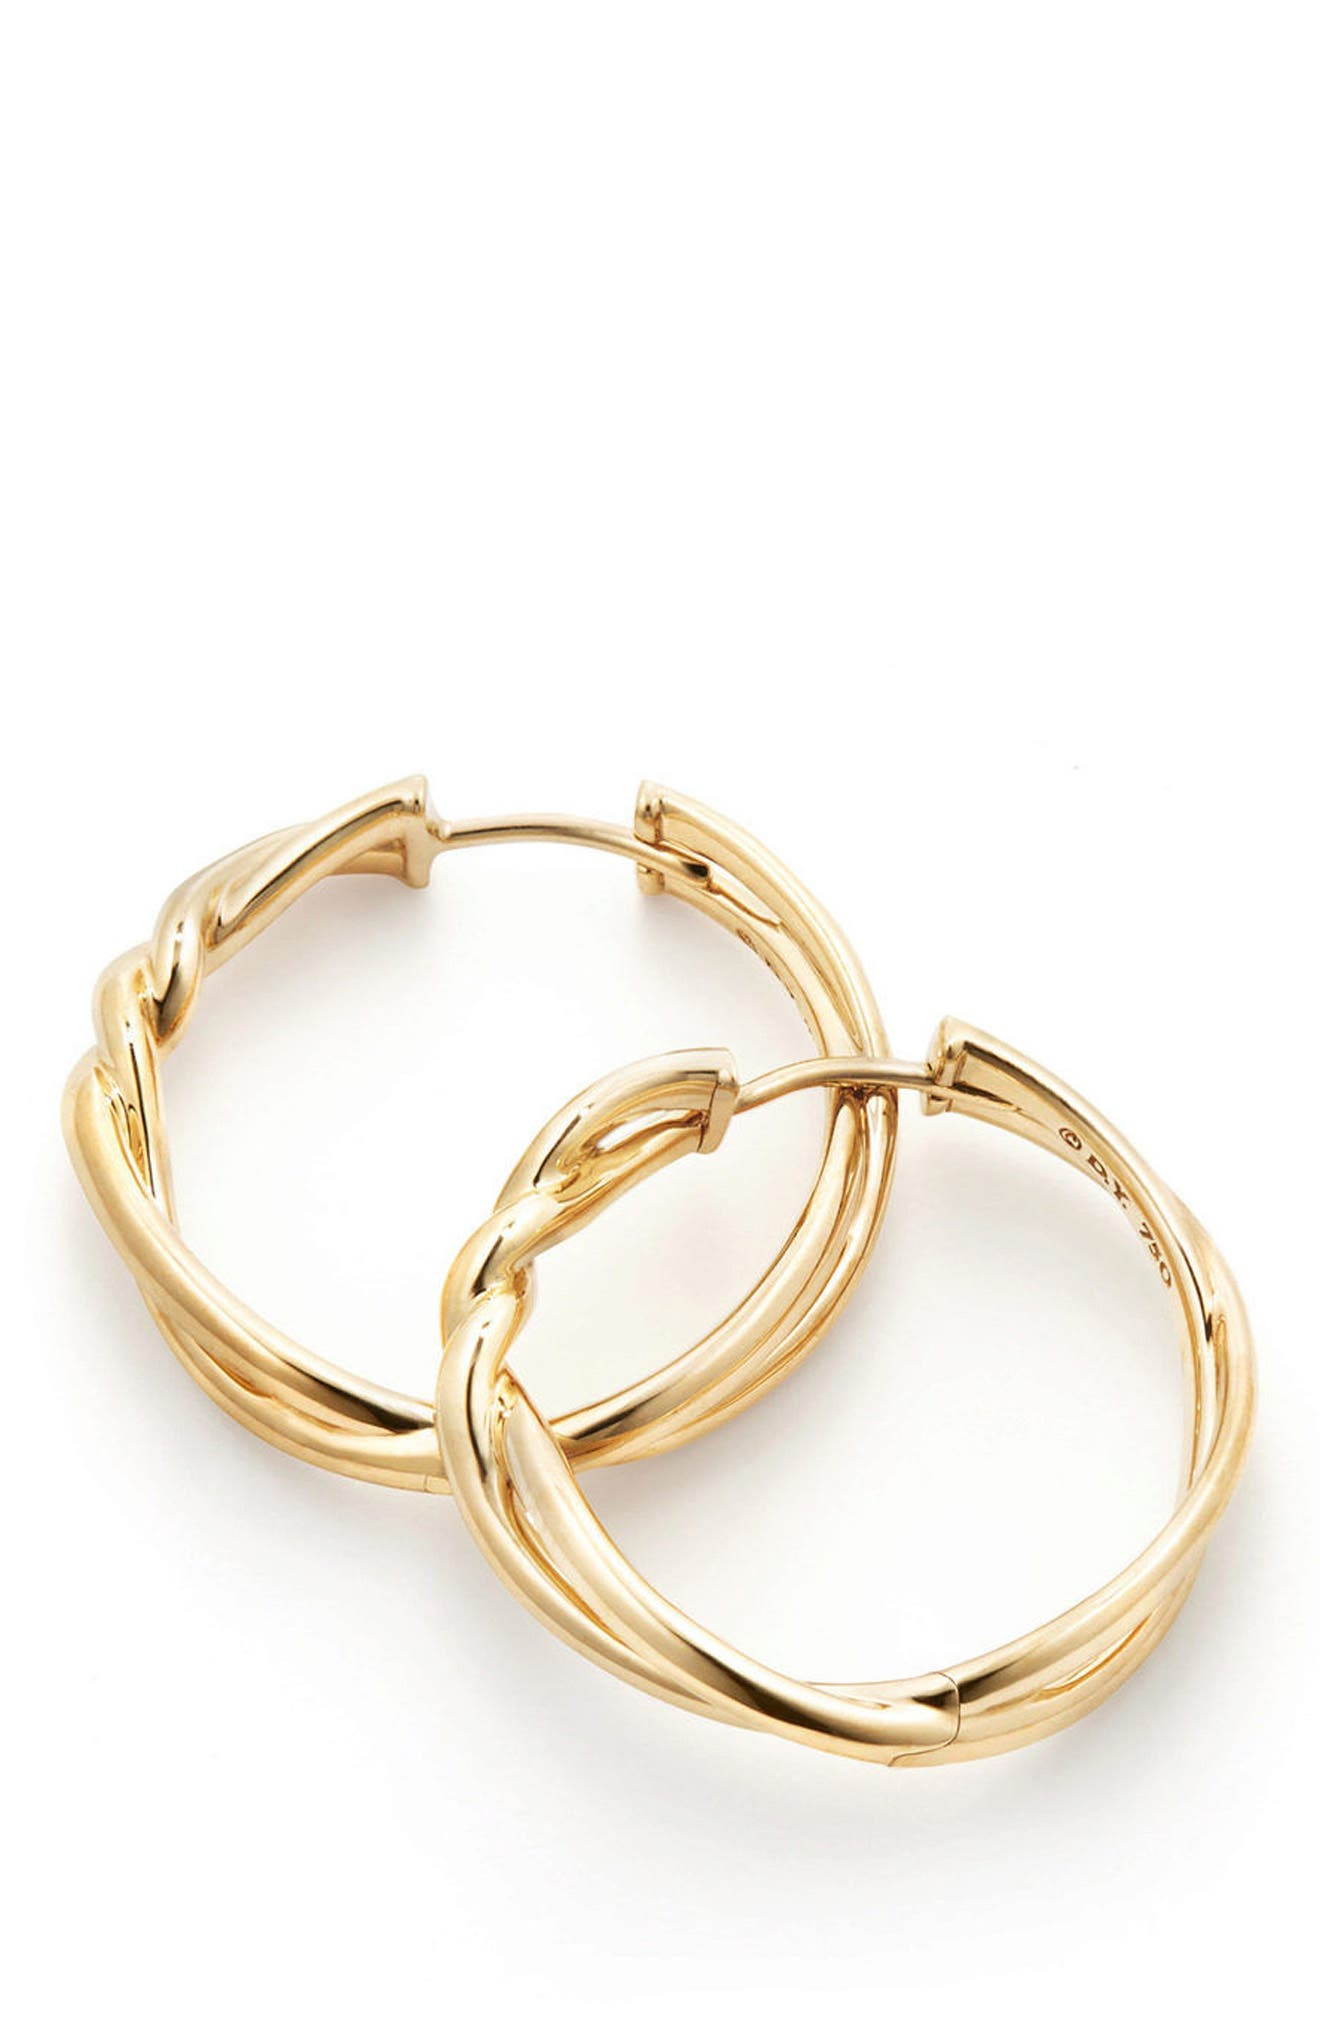 Continuance Hoop Earrings,                         Main,                         color, GOLD